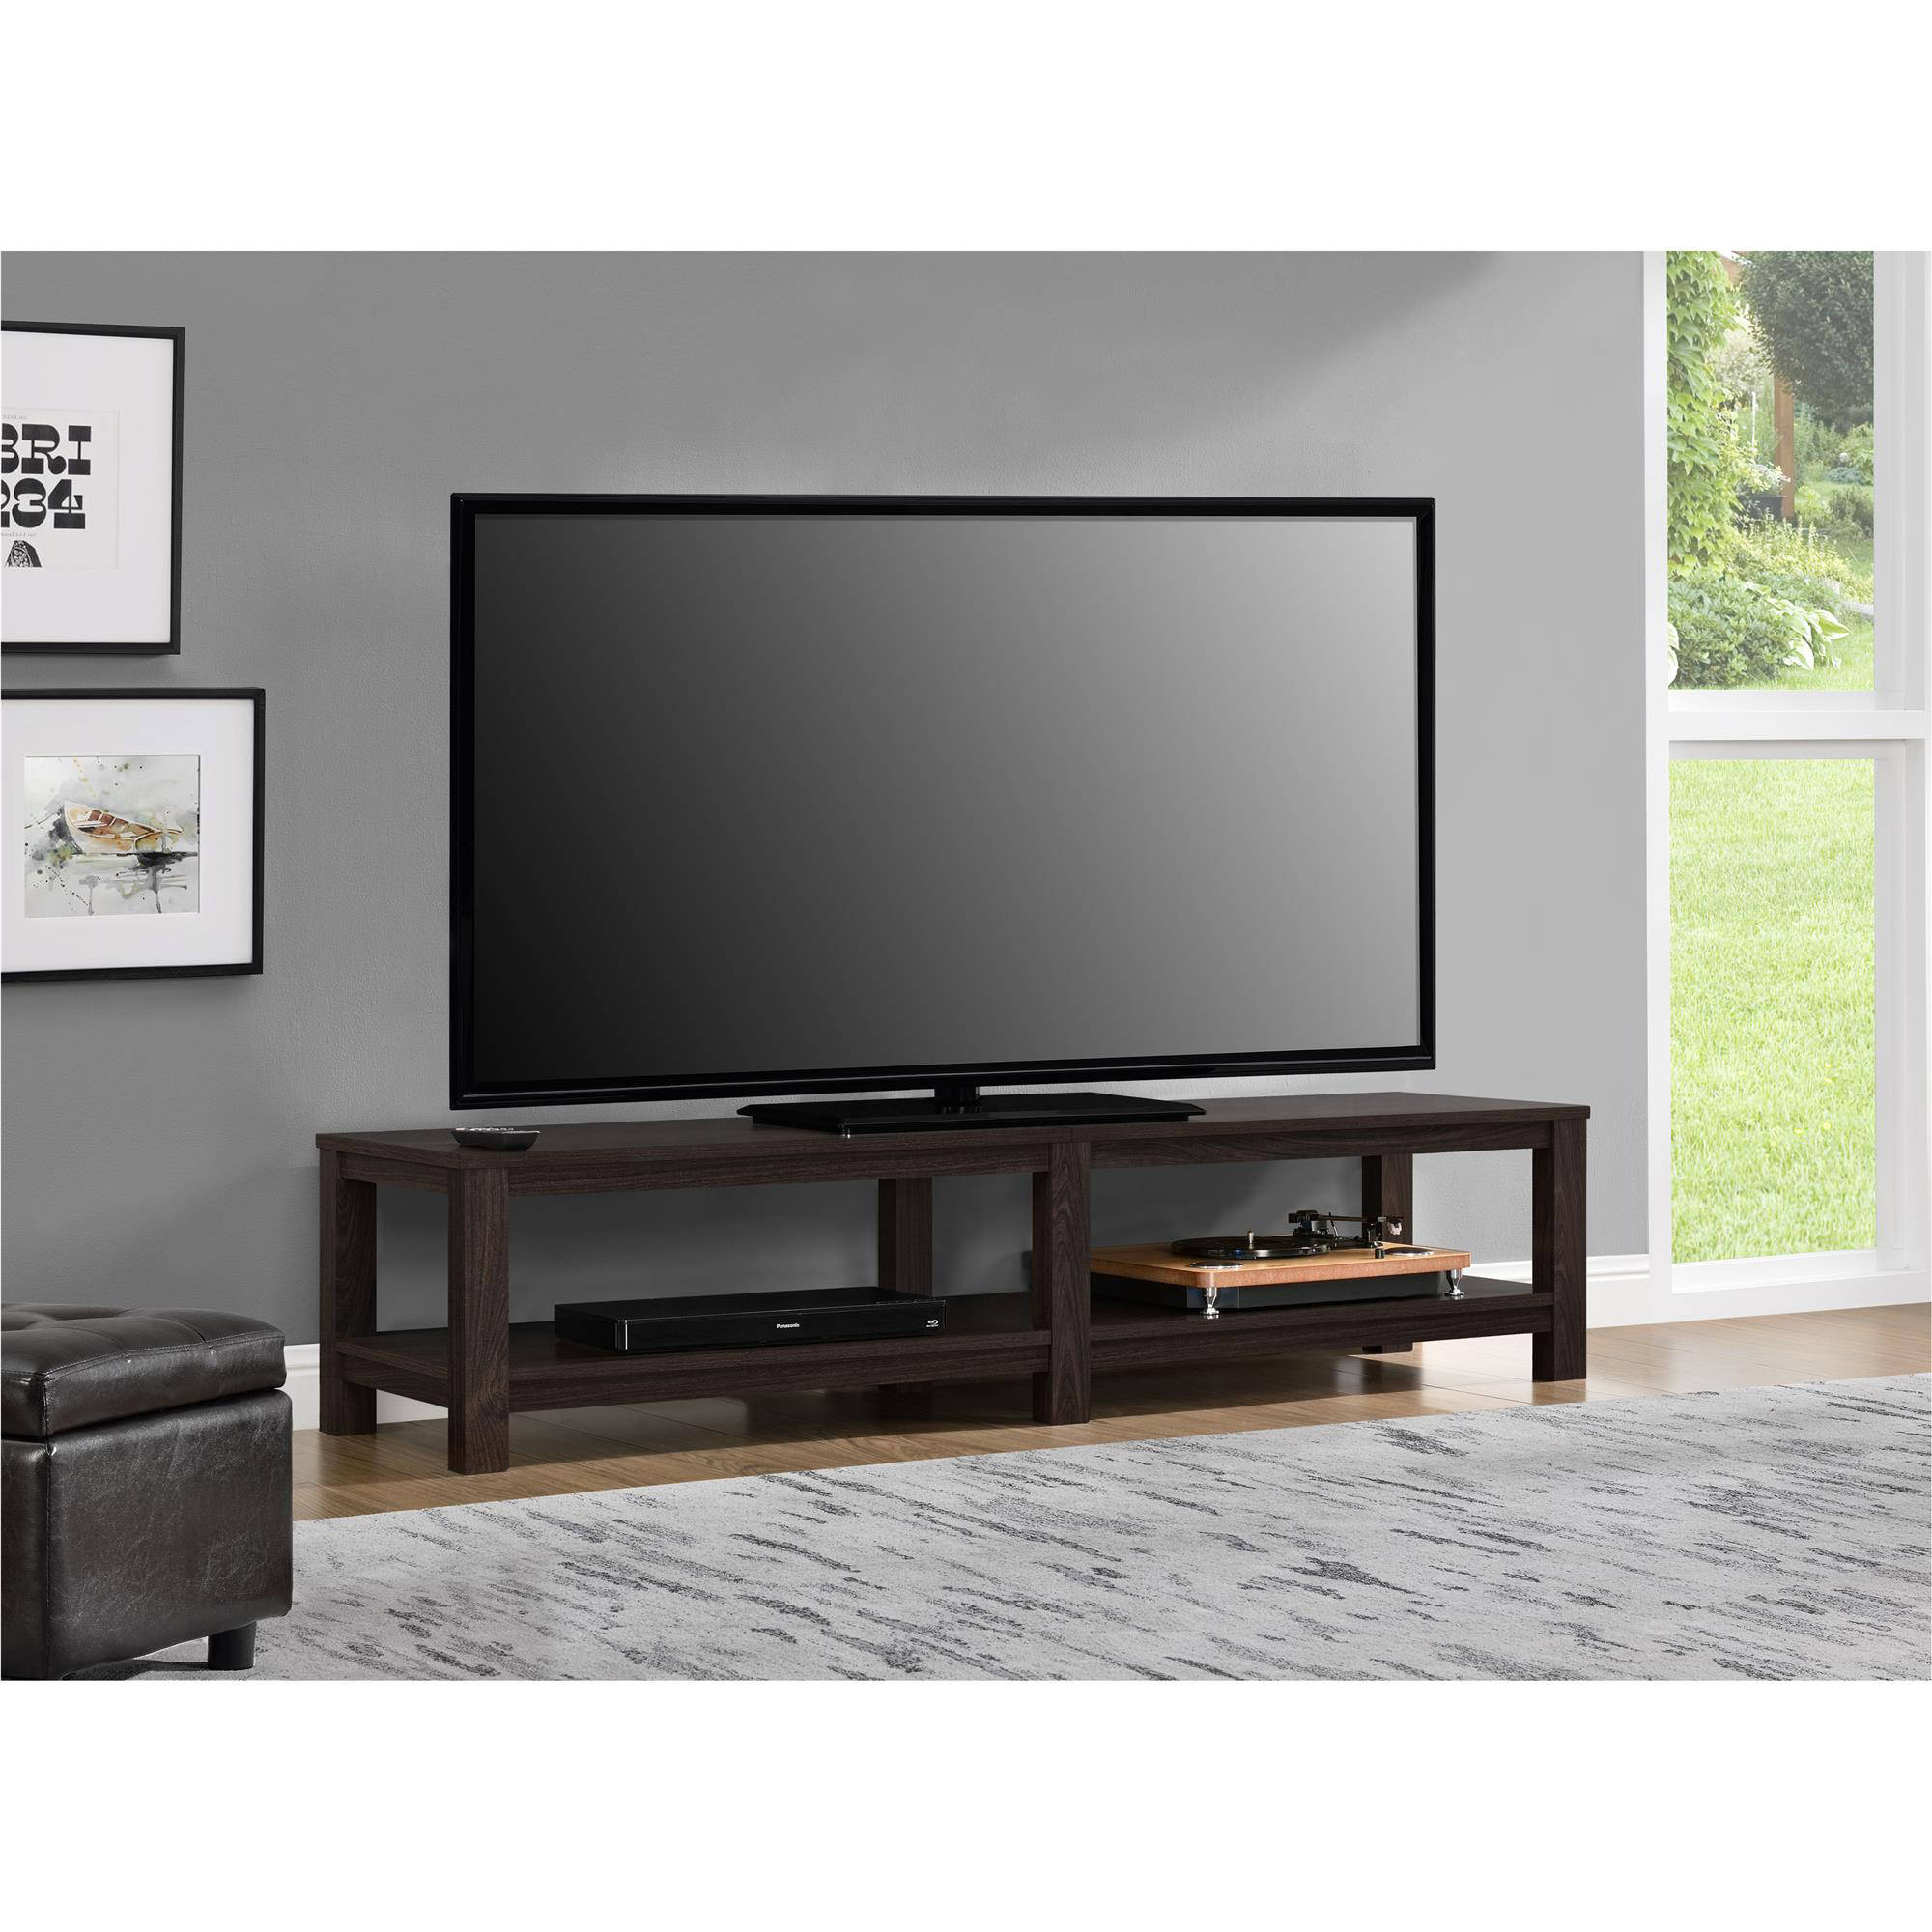 "Mainstays Parsons Tv Stand For Tvs Up To 65"", Multiple Colors regarding Century Blue 60 Inch Tv Stands (Image 10 of 30)"